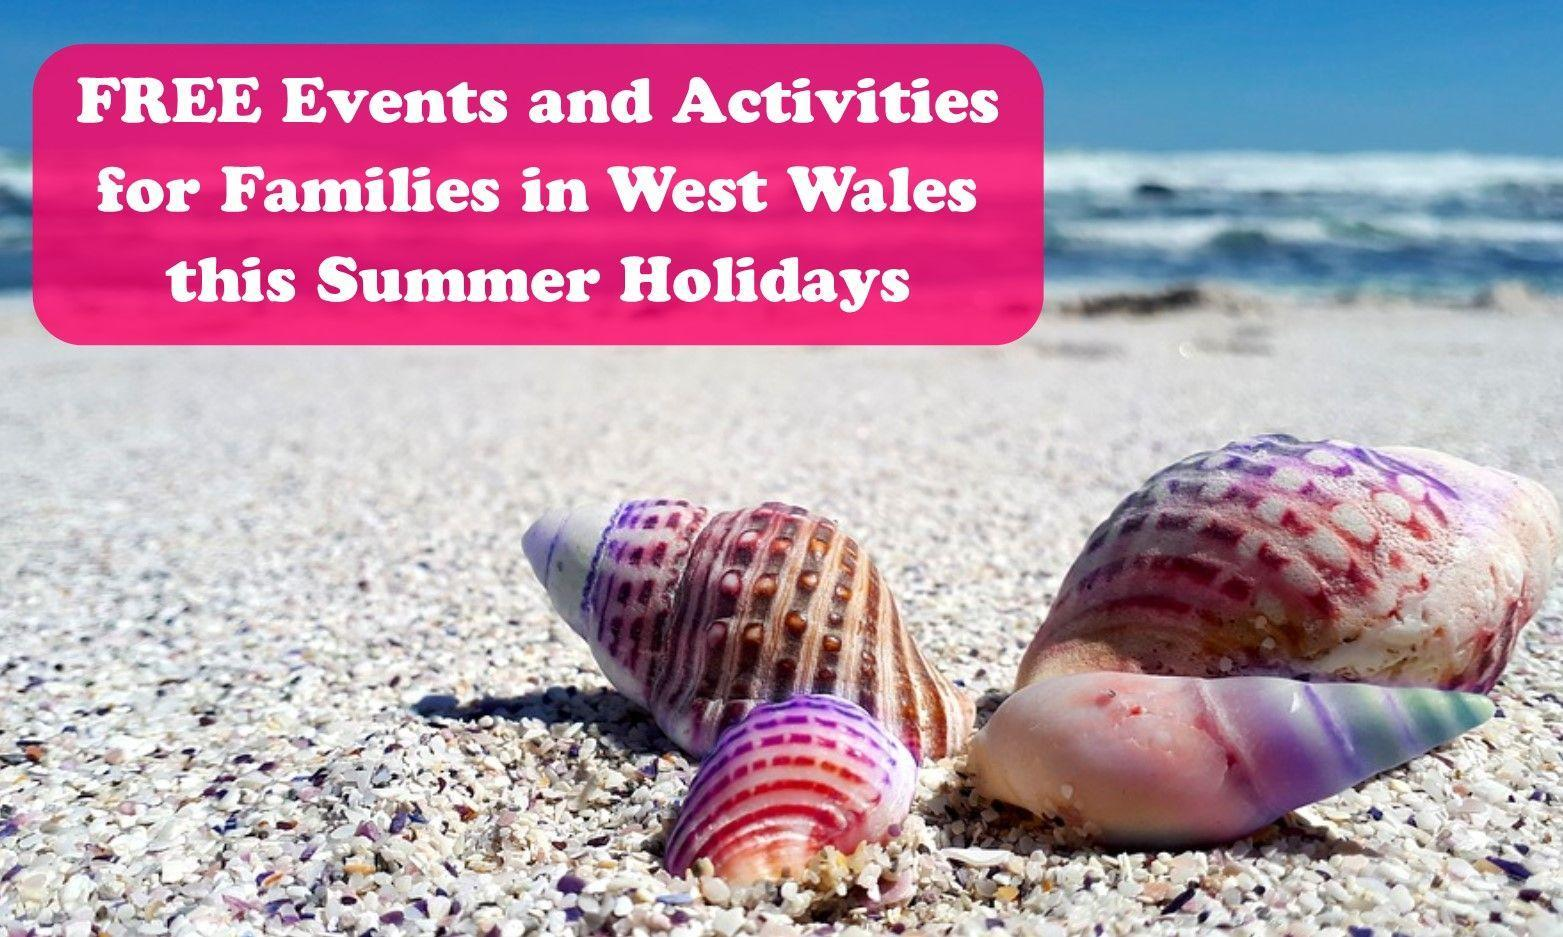 FREE Events and Activities for Families in West Wales this Summer